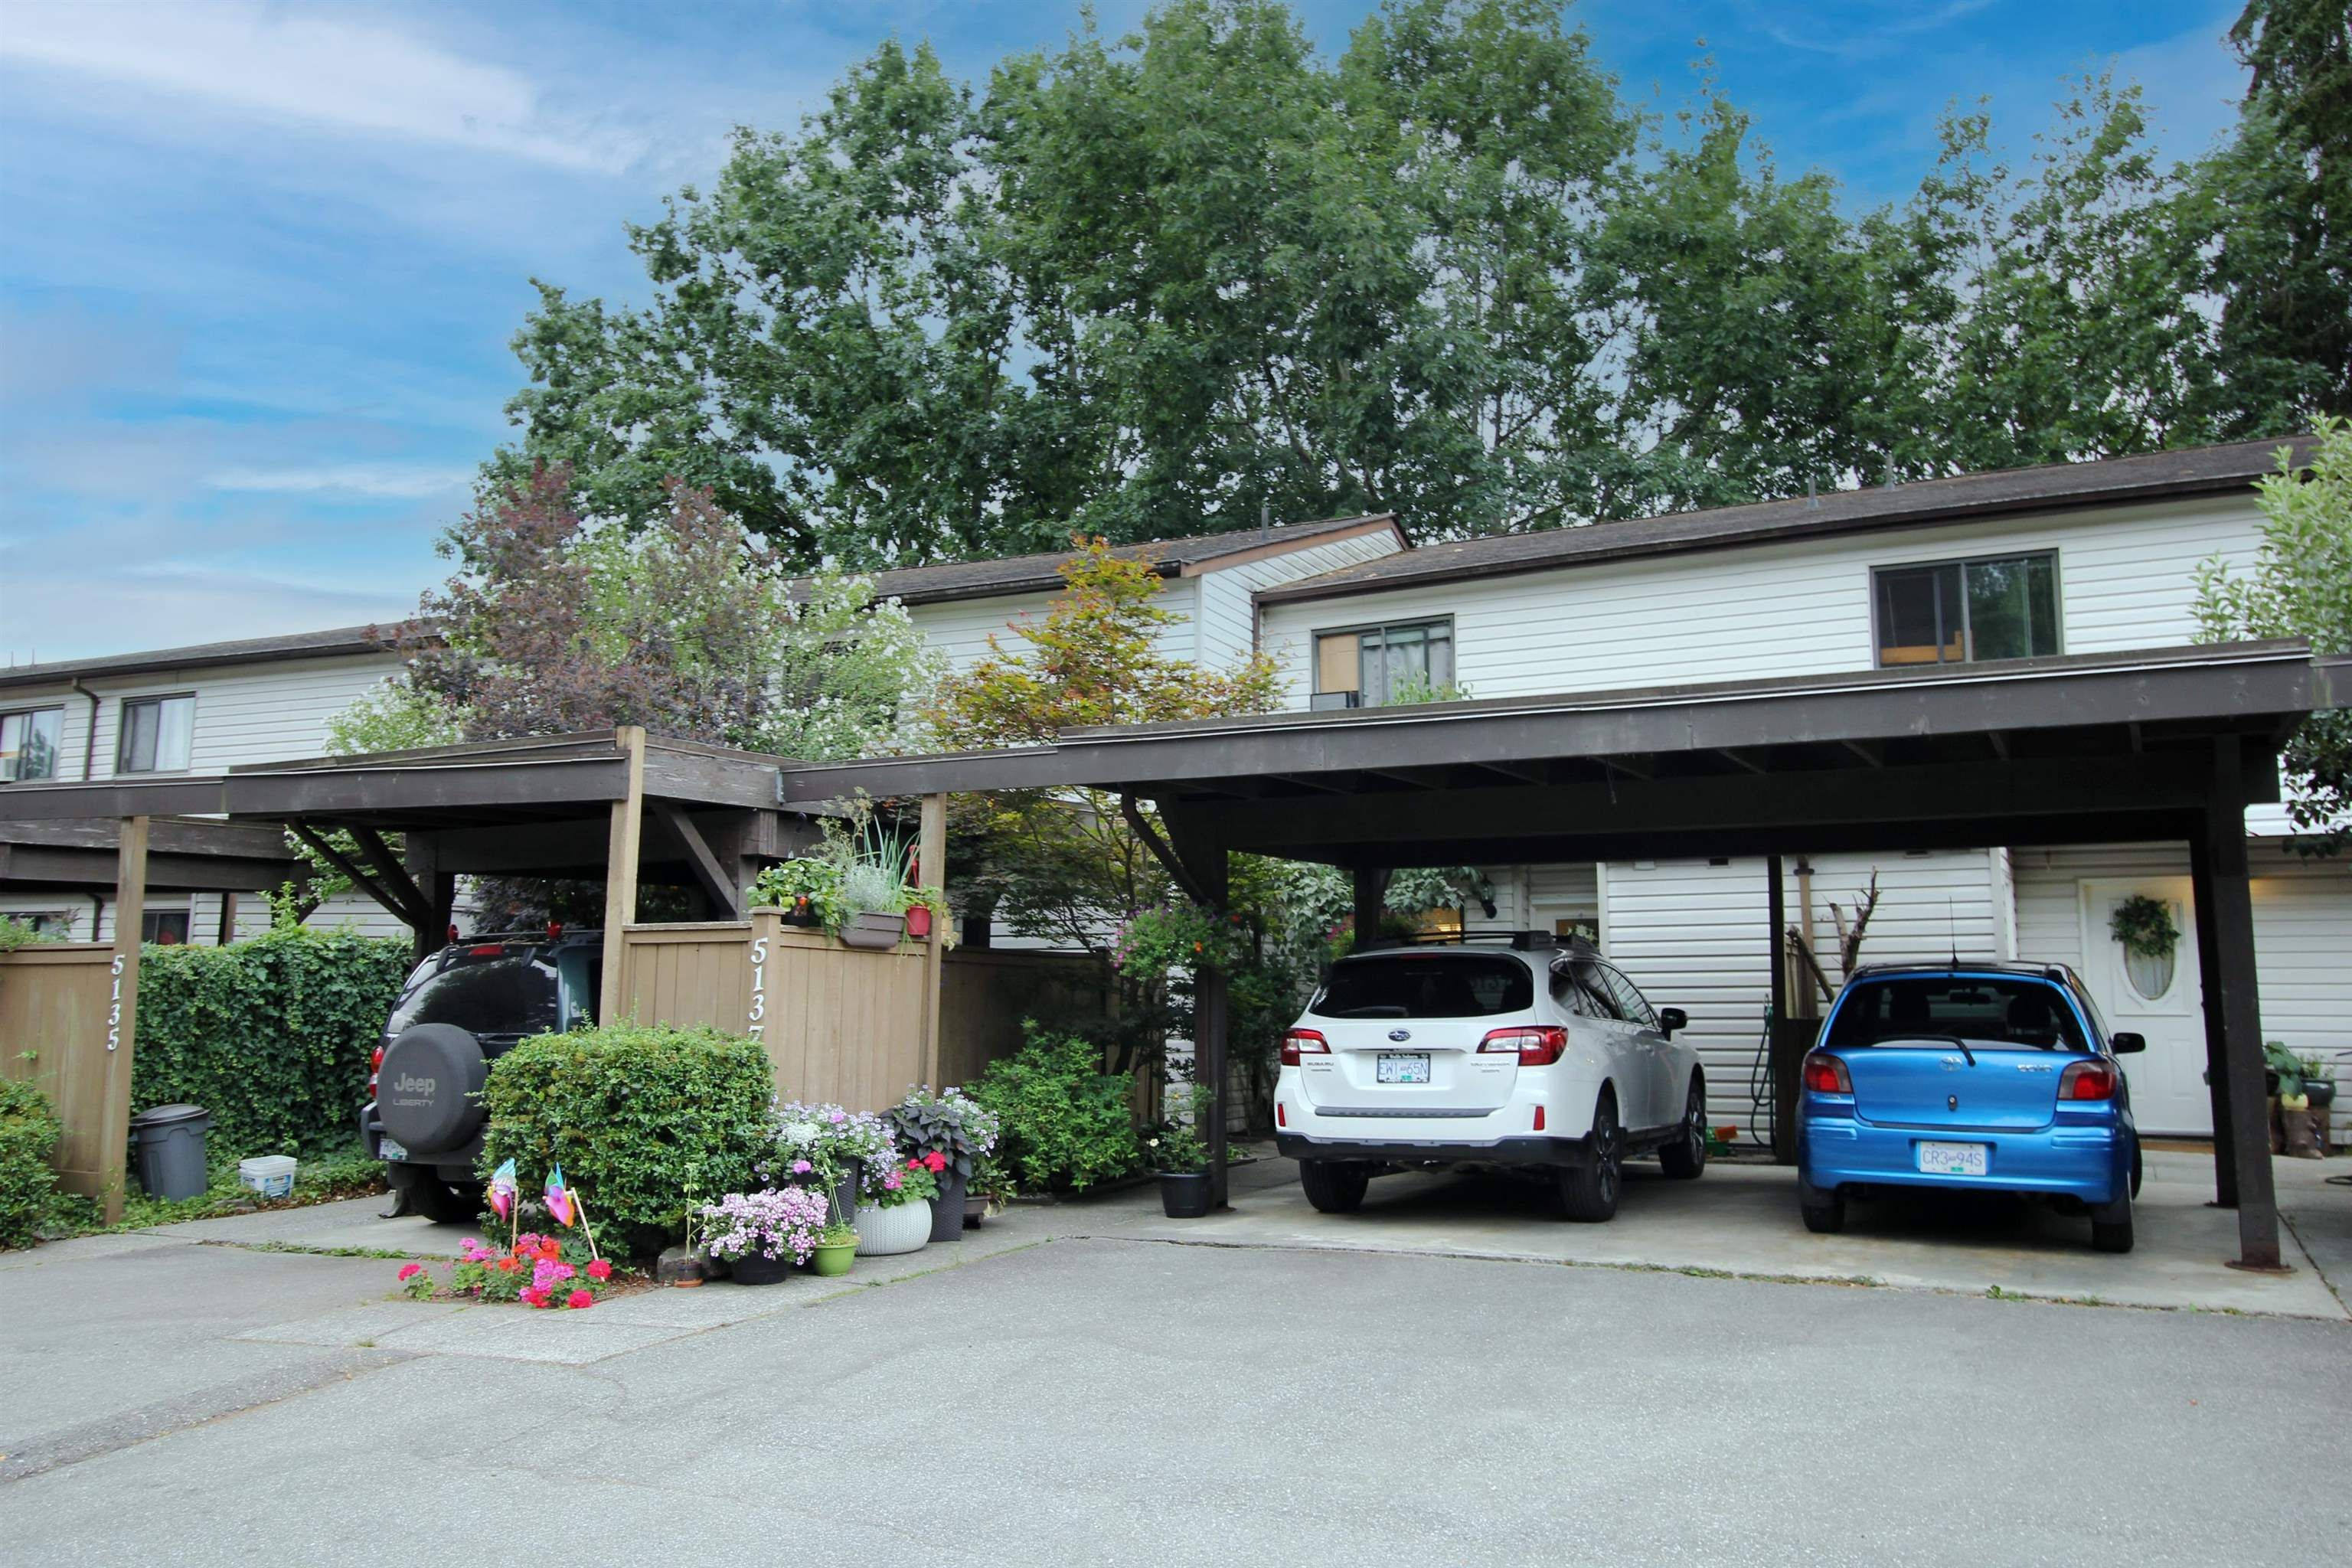 """Main Photo: 5137 203 Street in Langley: Langley City Townhouse for sale in """"Longlea Estates"""" : MLS®# R2609722"""